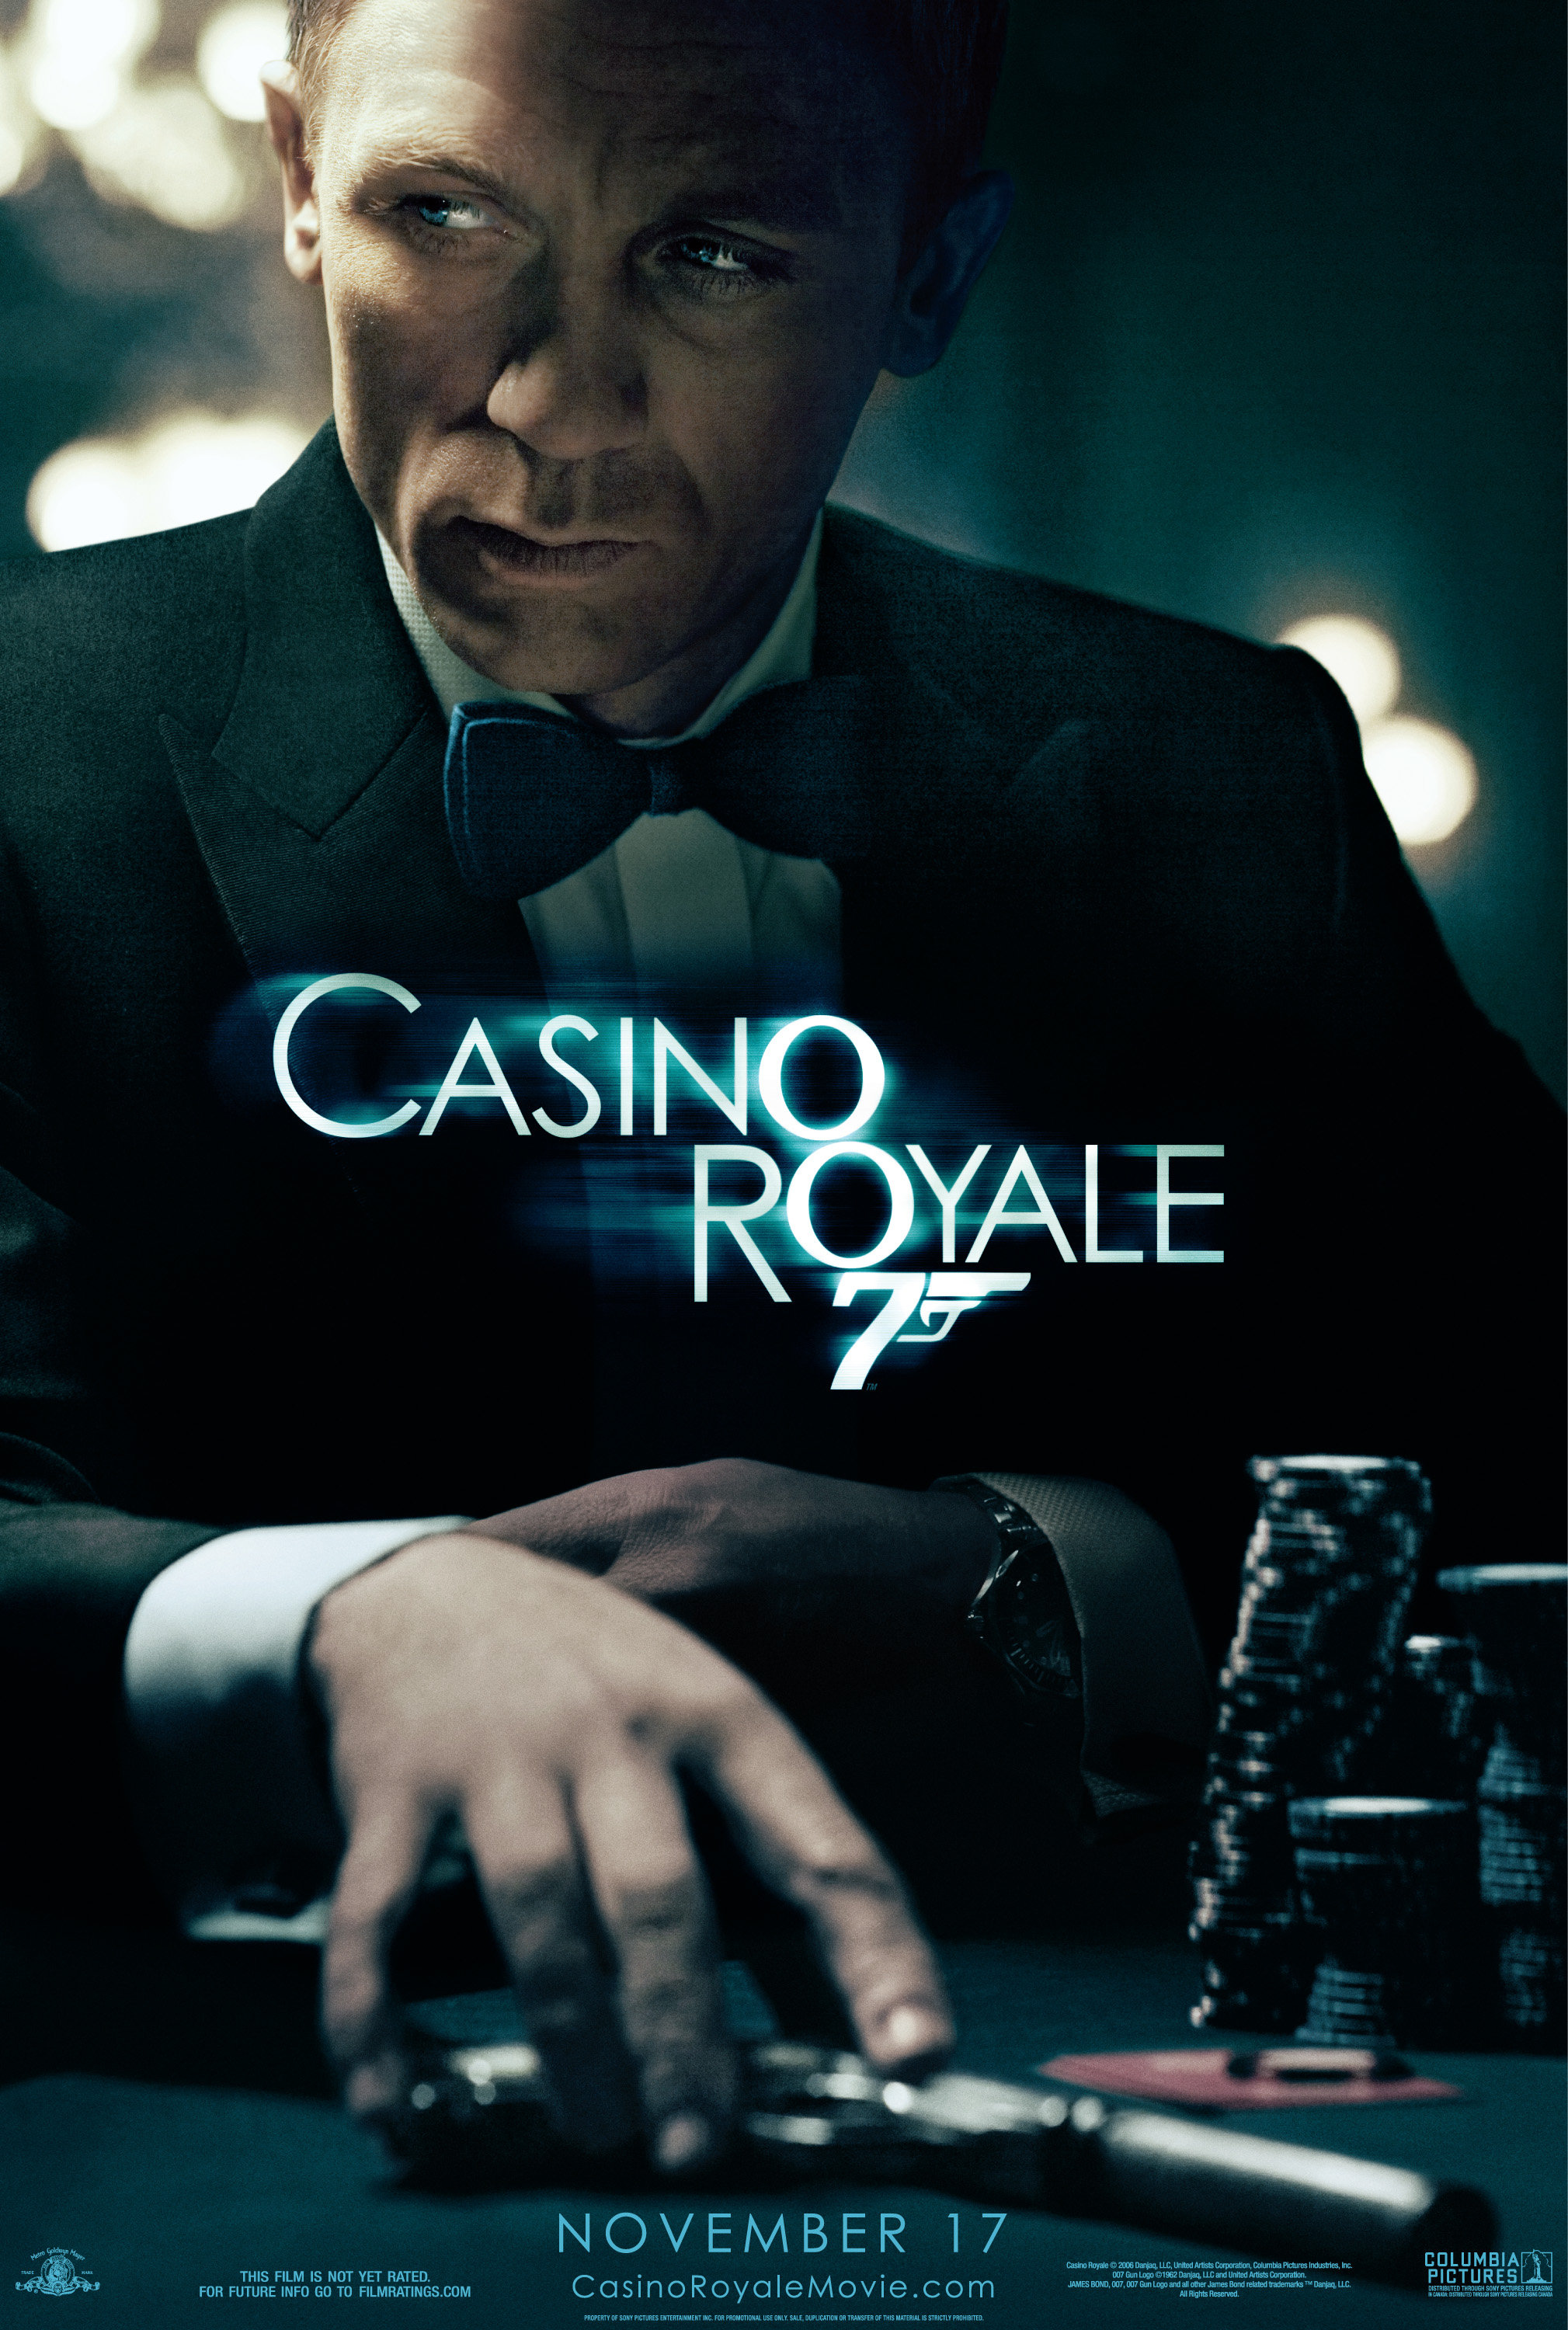 Casino royale 2006 film - wikipedia the free encyclopedia hunger games 2 at the movies